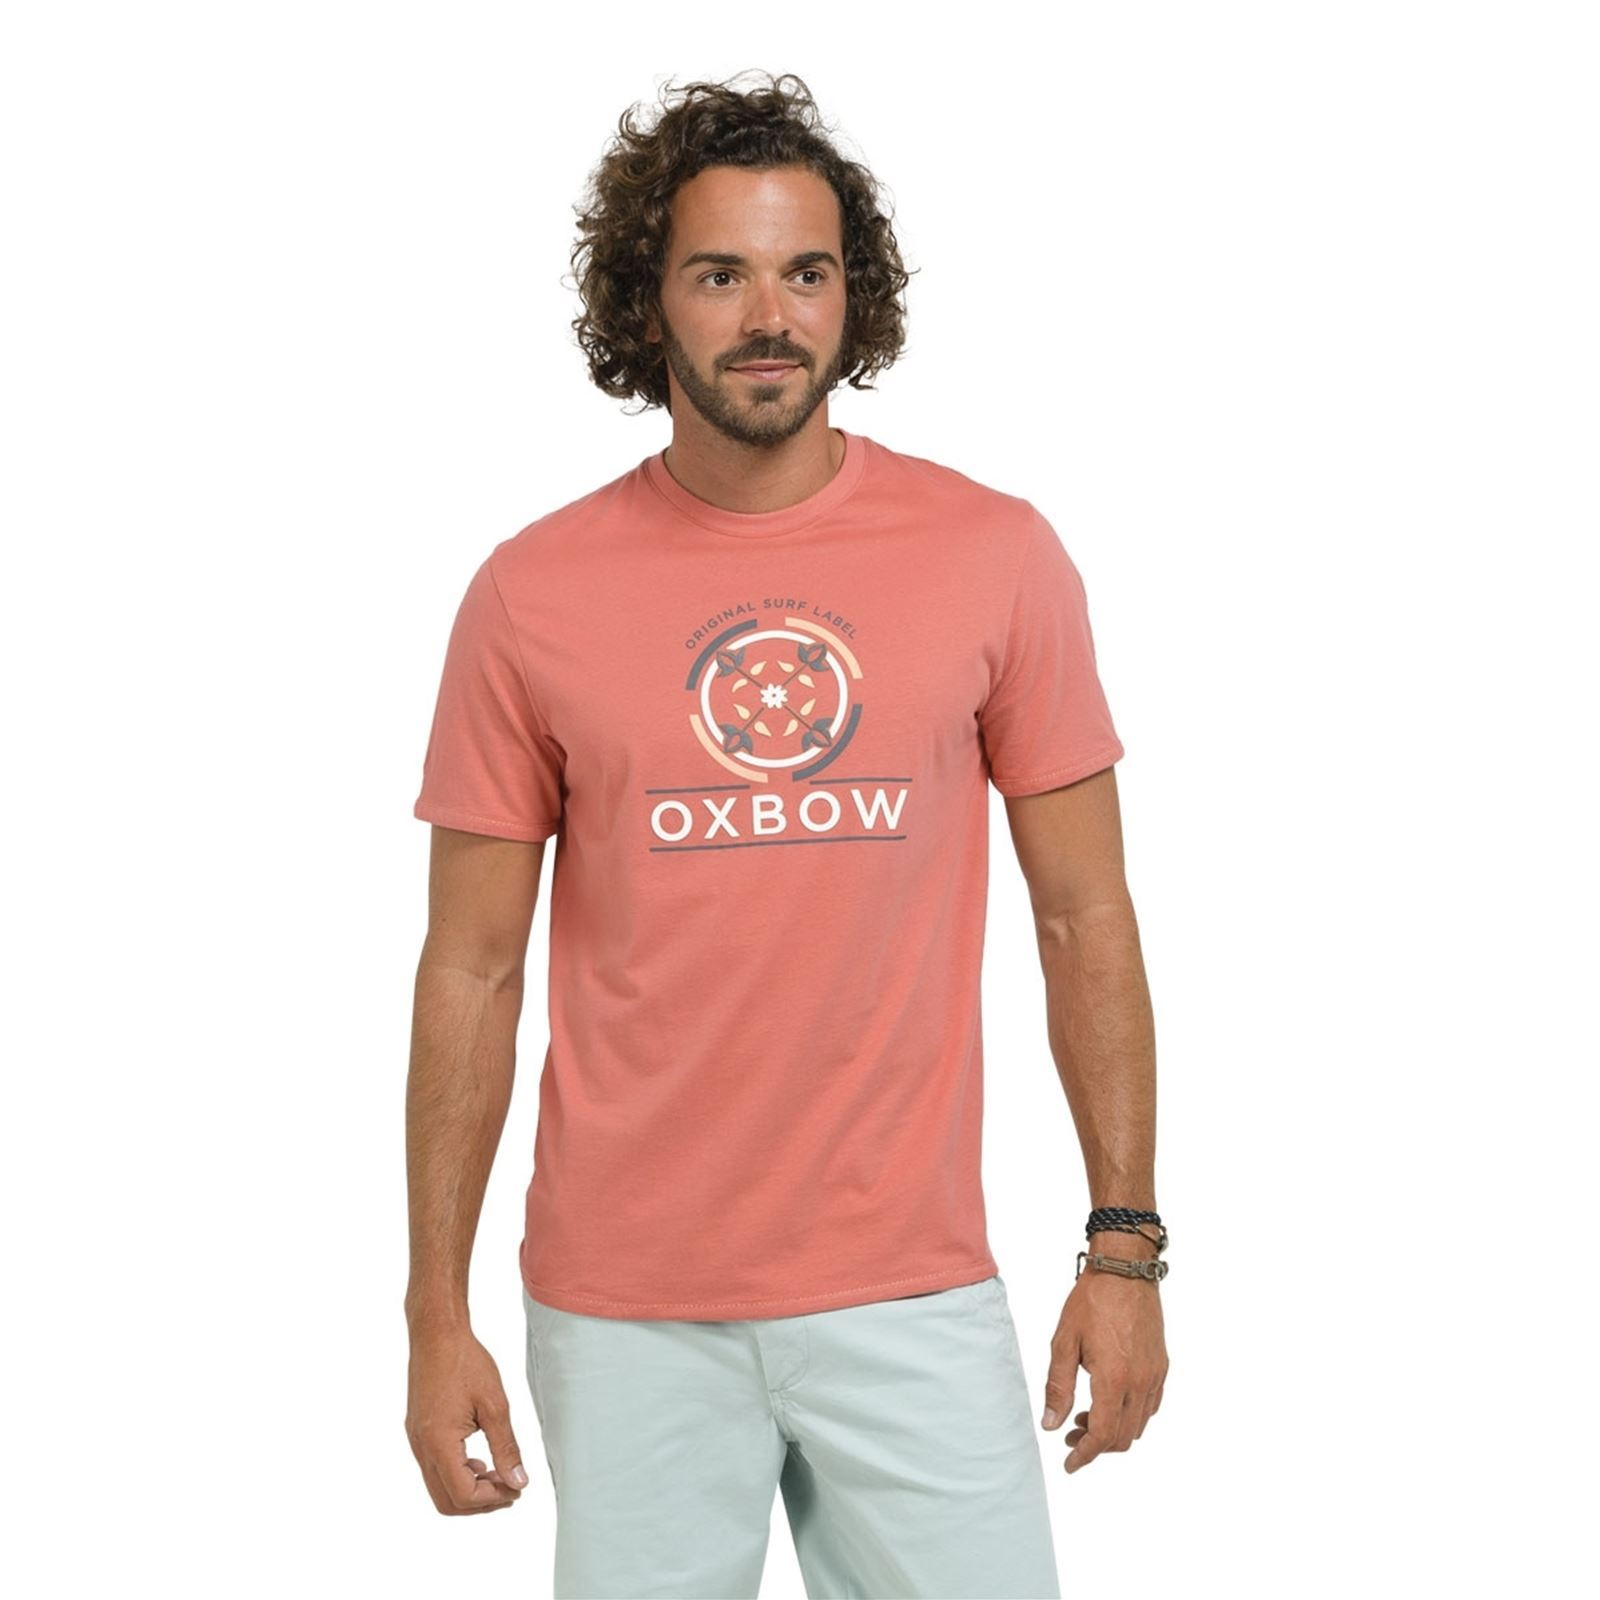 Tzec Manches Abricot shirt T Oxbow Courtes nvxwY464q